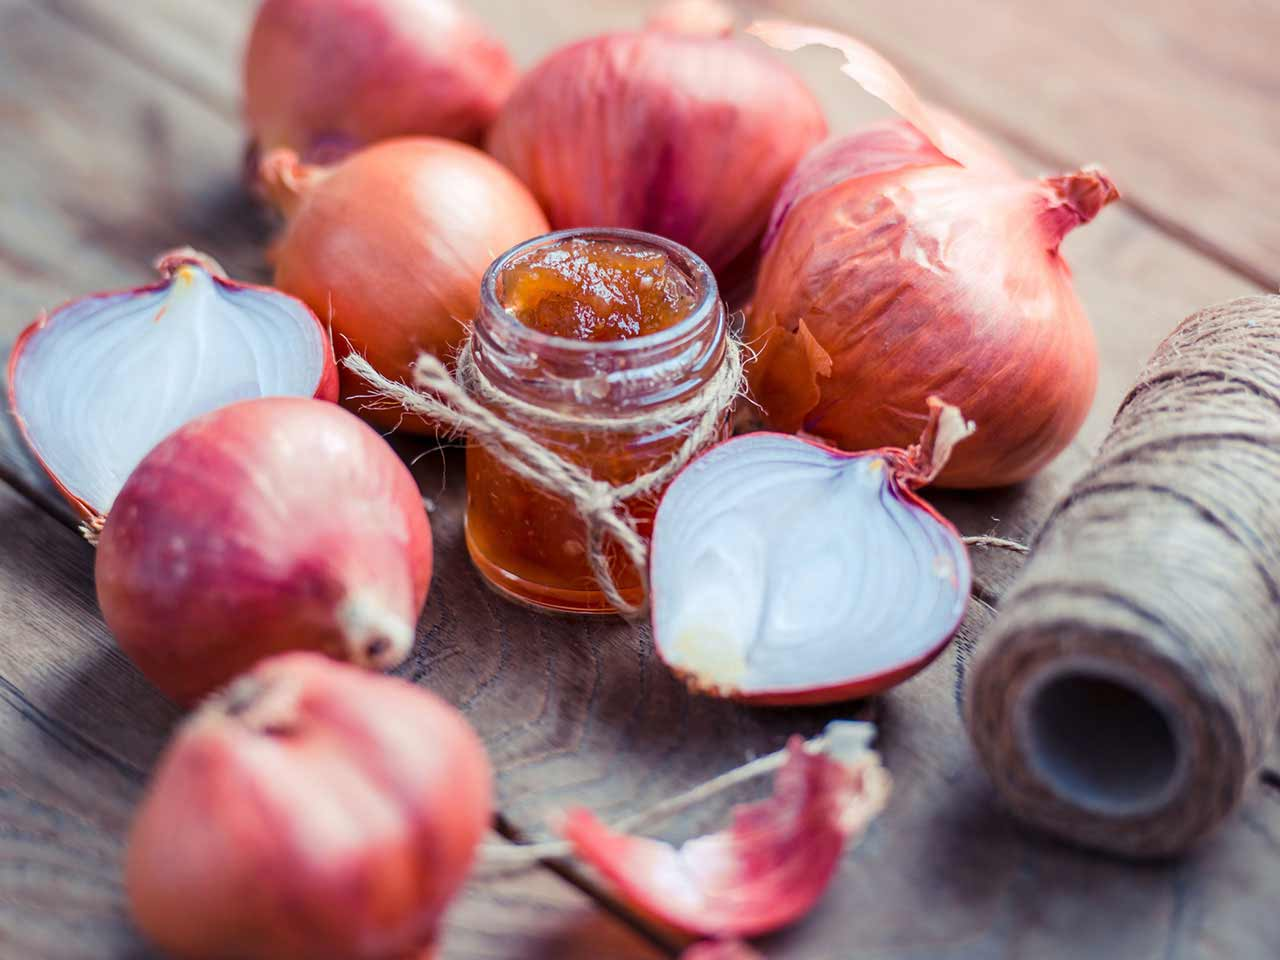 Onion marmalade surrounded by onions on wooden table